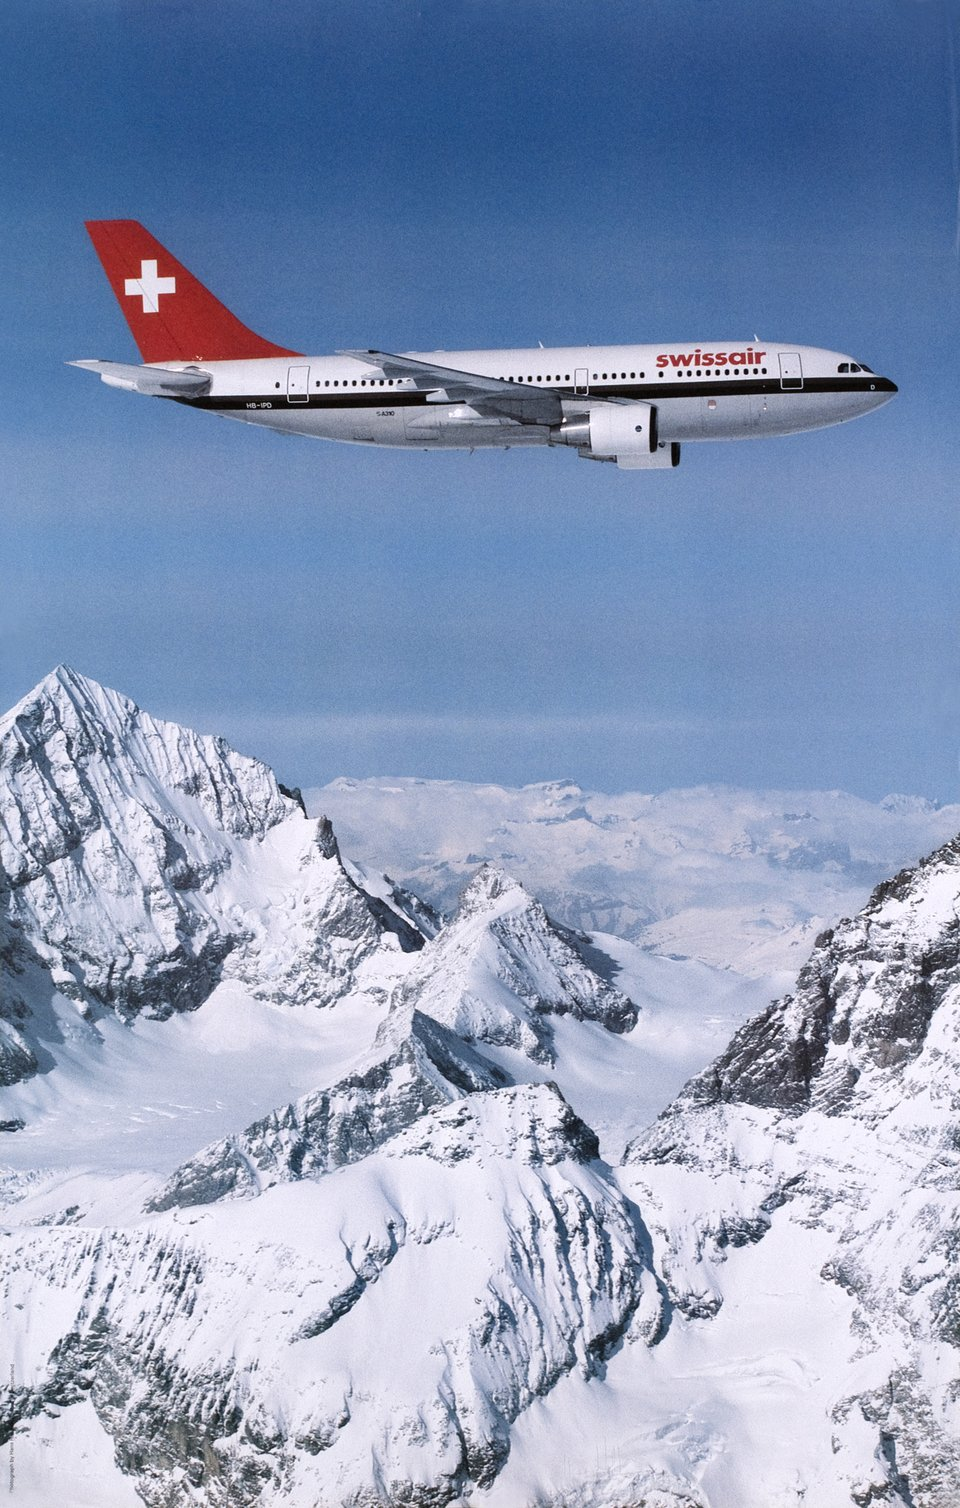 Vintage poster – Swissair, Airbus A310 – Galerie 1 2 3